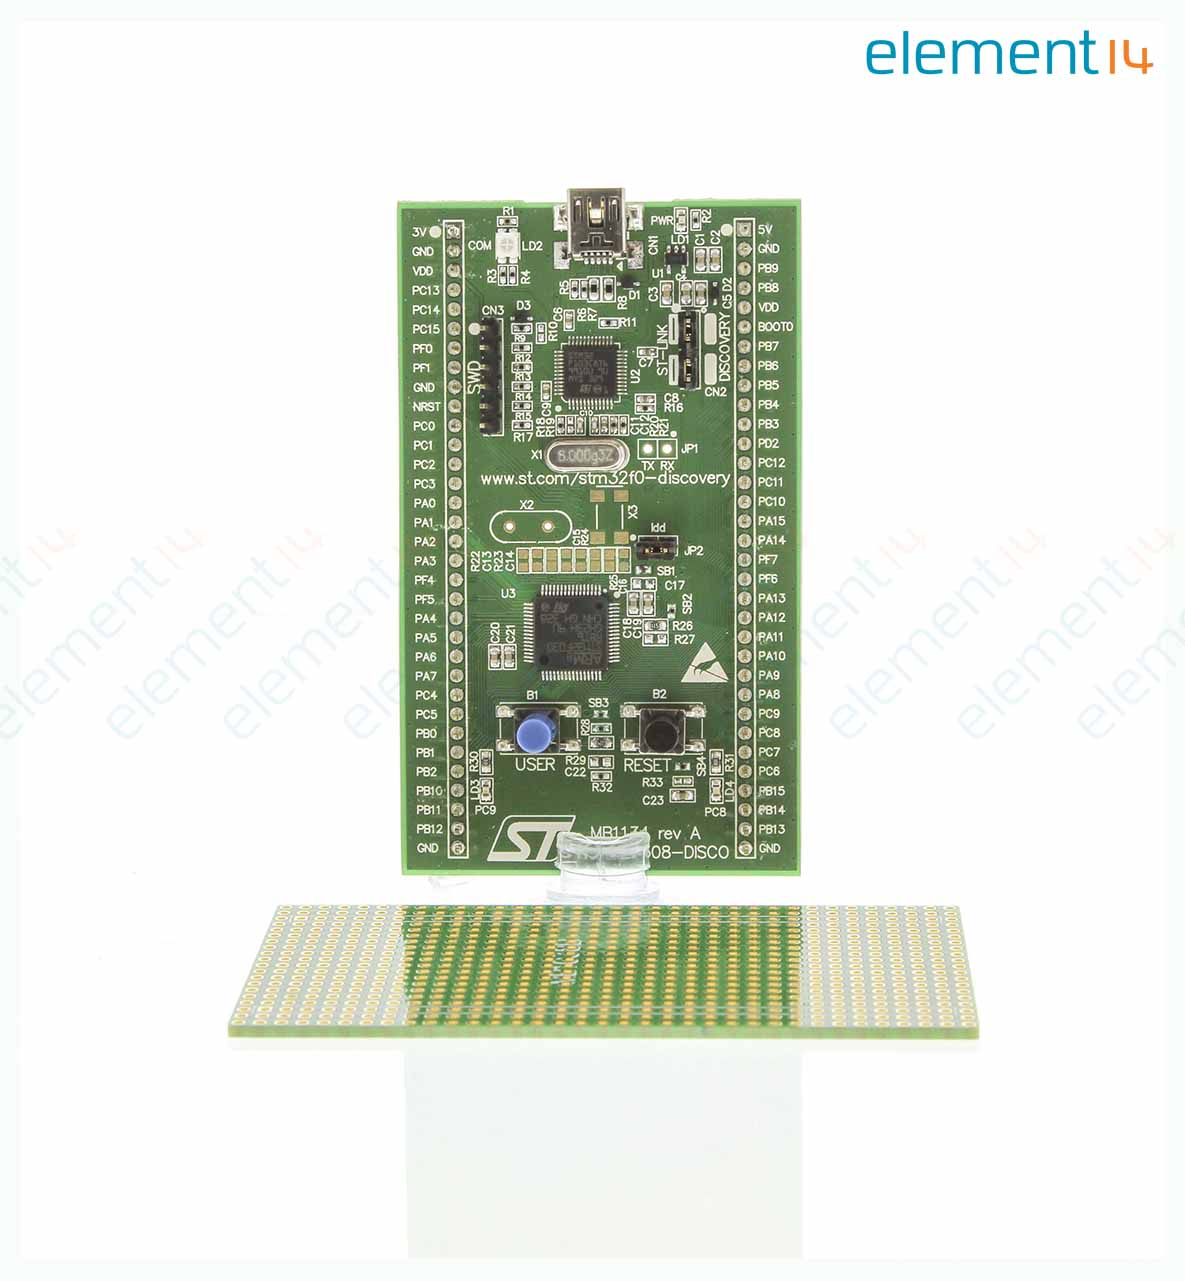 Stm32f0308 Disco Stmicroelectronics Evaluation Board Stm32f030r8 Electronics Learning Circuits Webonly Products Technology Add To Compare